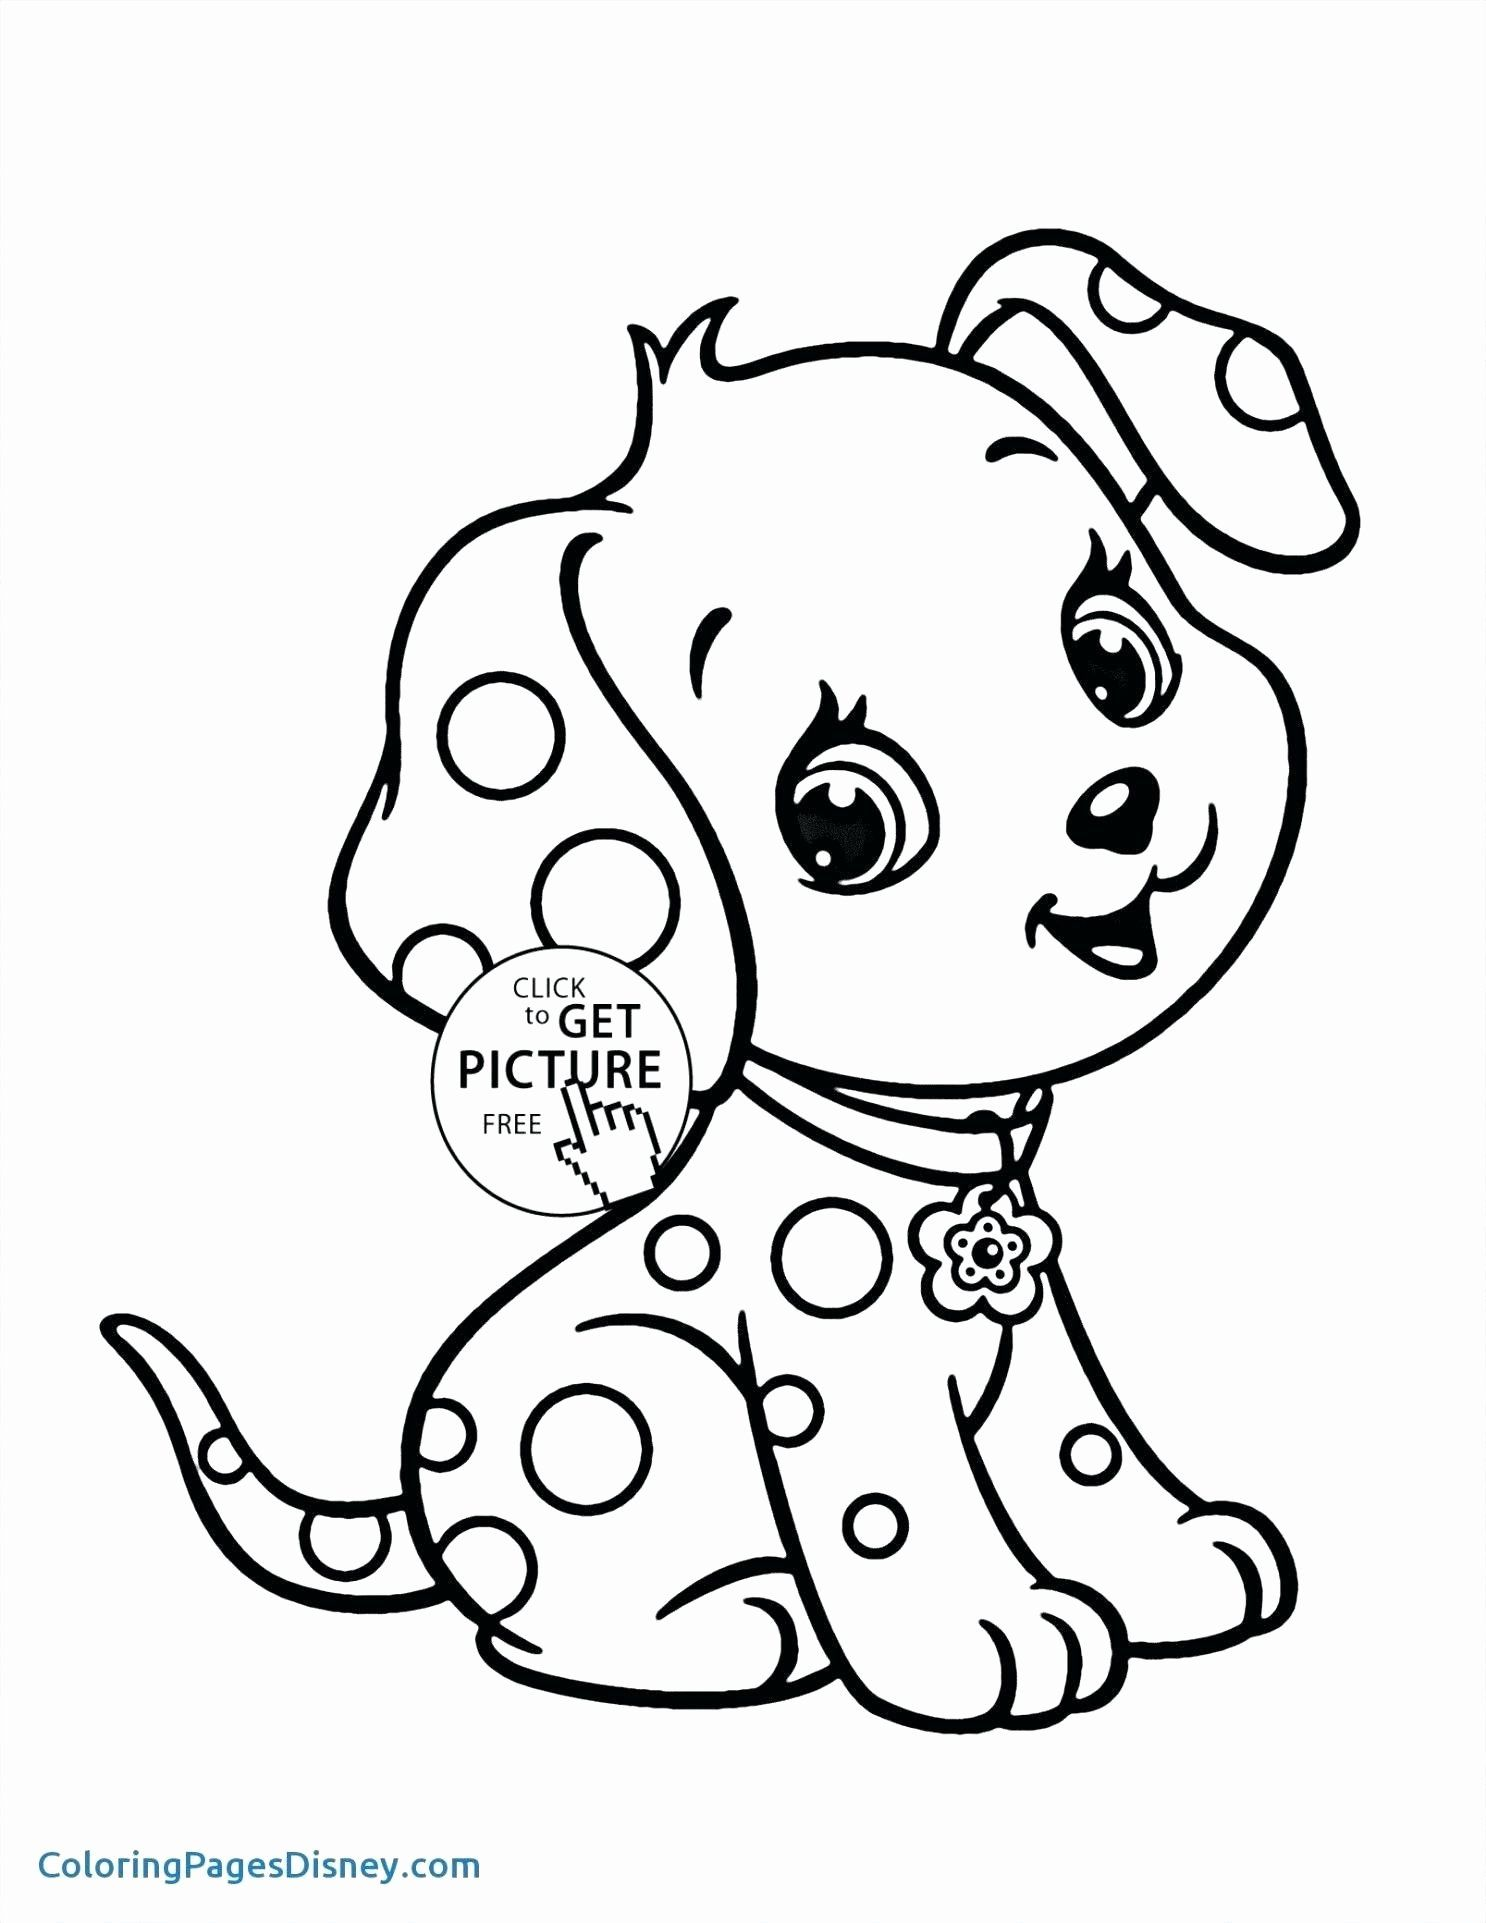 Winter Scenes Coloring Book Luxury Coloring Books Coloring For Toddlers May Pages With Unicorn Coloring Pages Puppy Coloring Pages Princess Coloring Pages